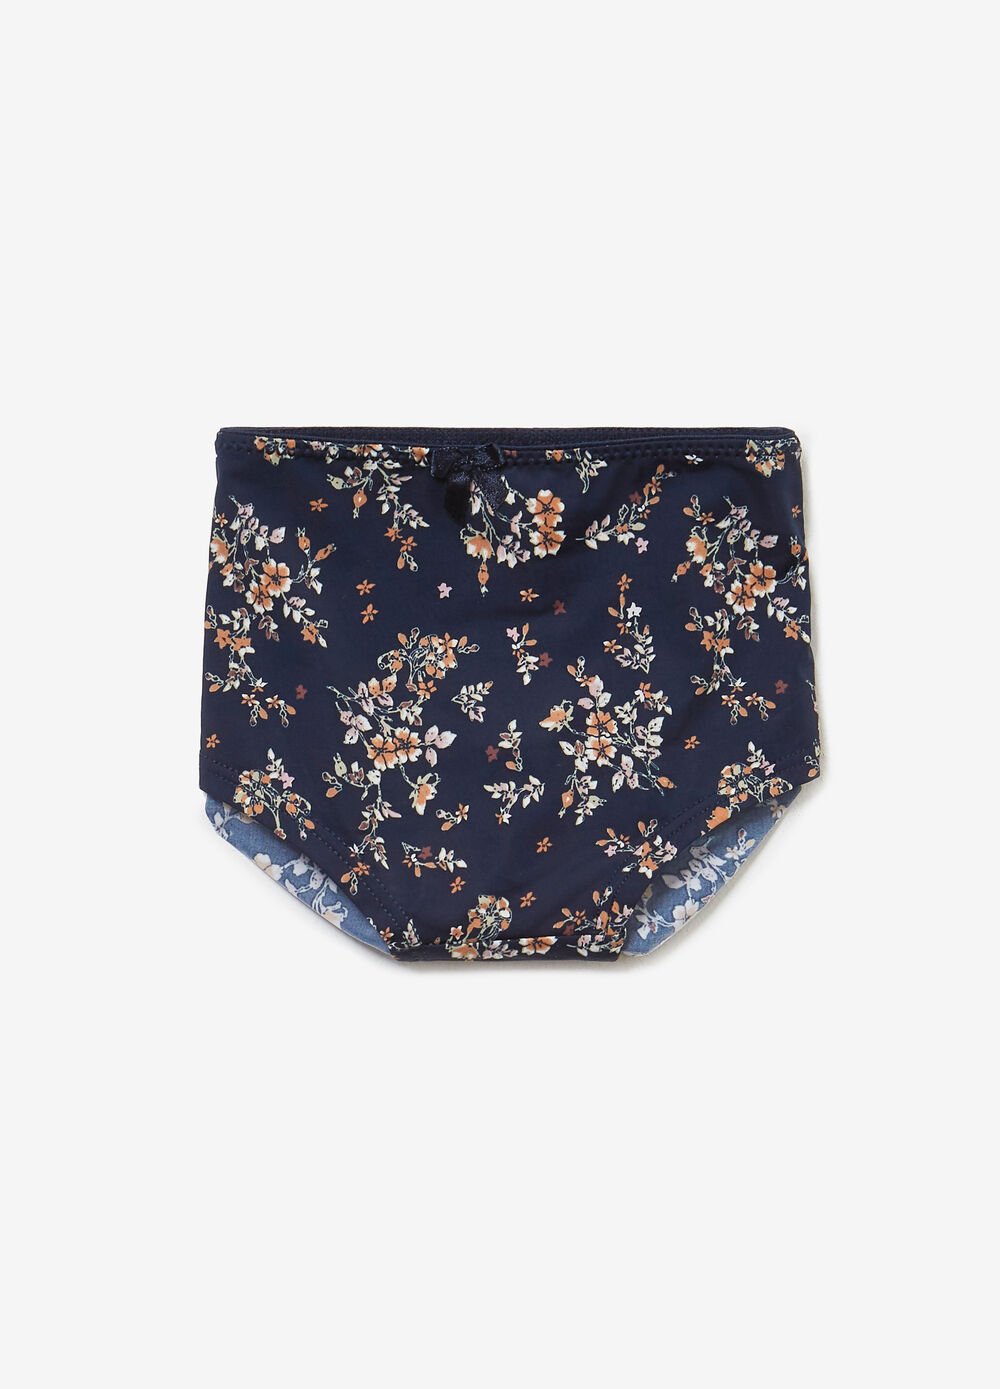 Briefs with all-over floral print